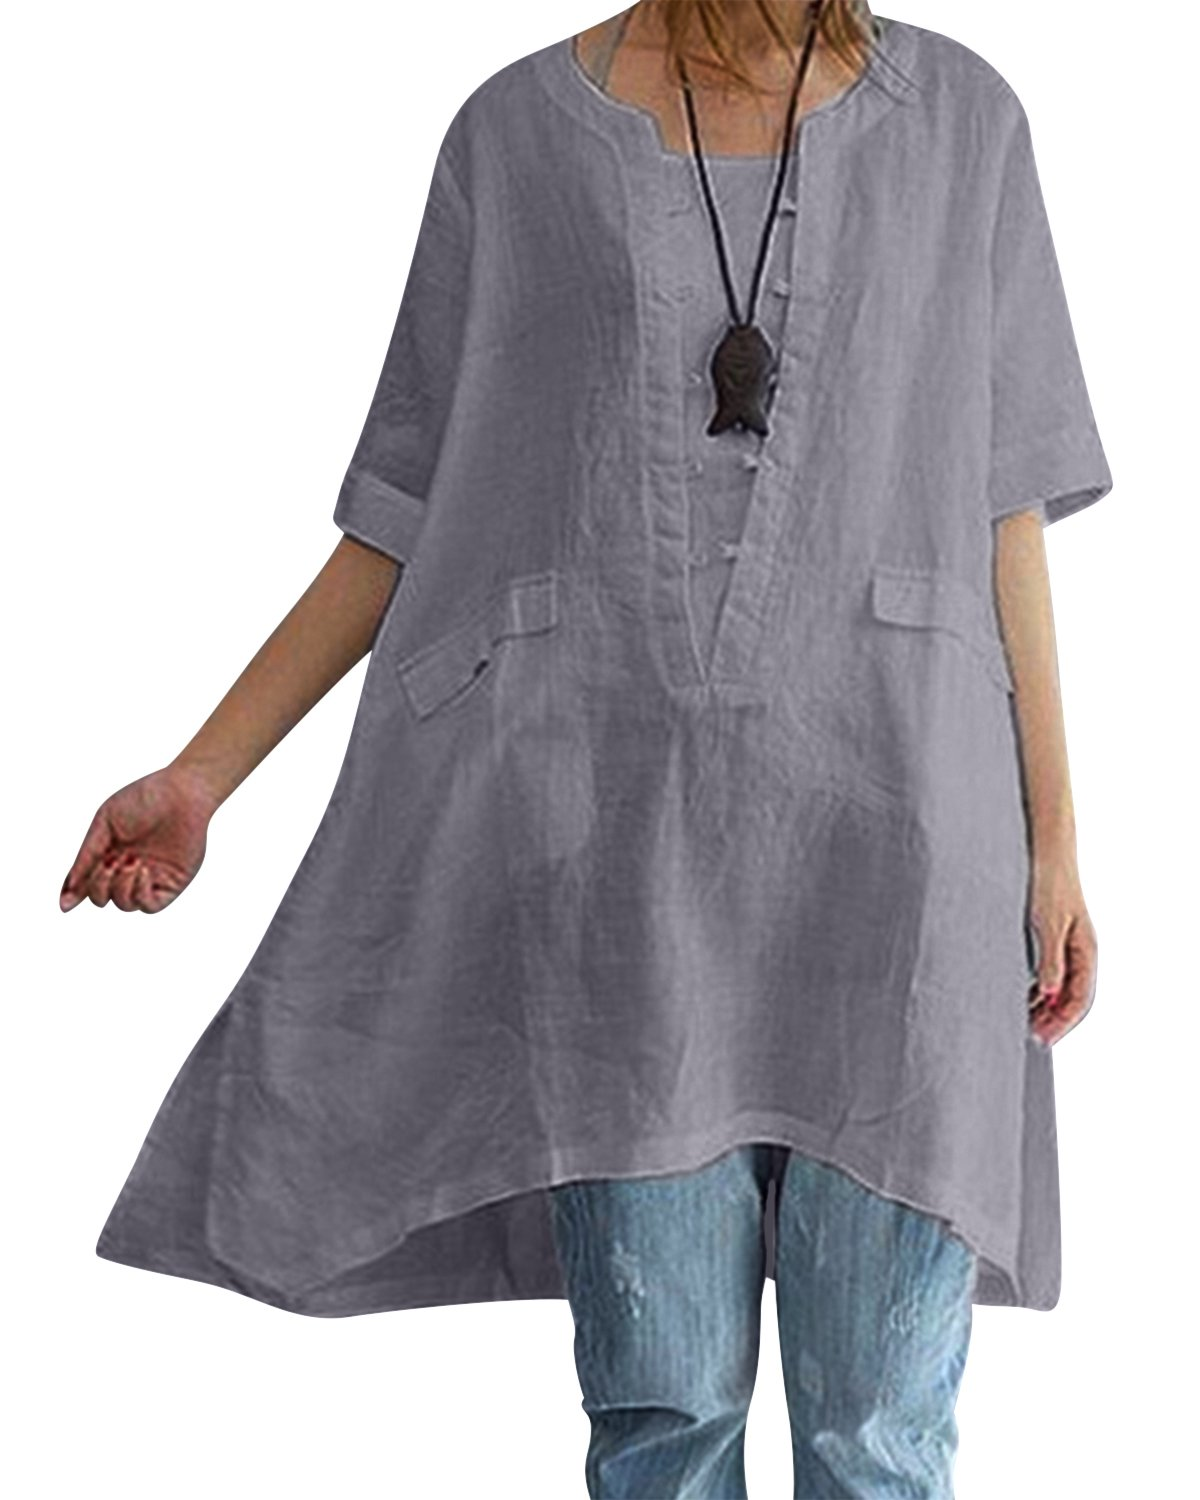 BBYES Womens Solid Cotton Linen Short Sleeve Split Side Tunic Top Tees with Pocket Gray L